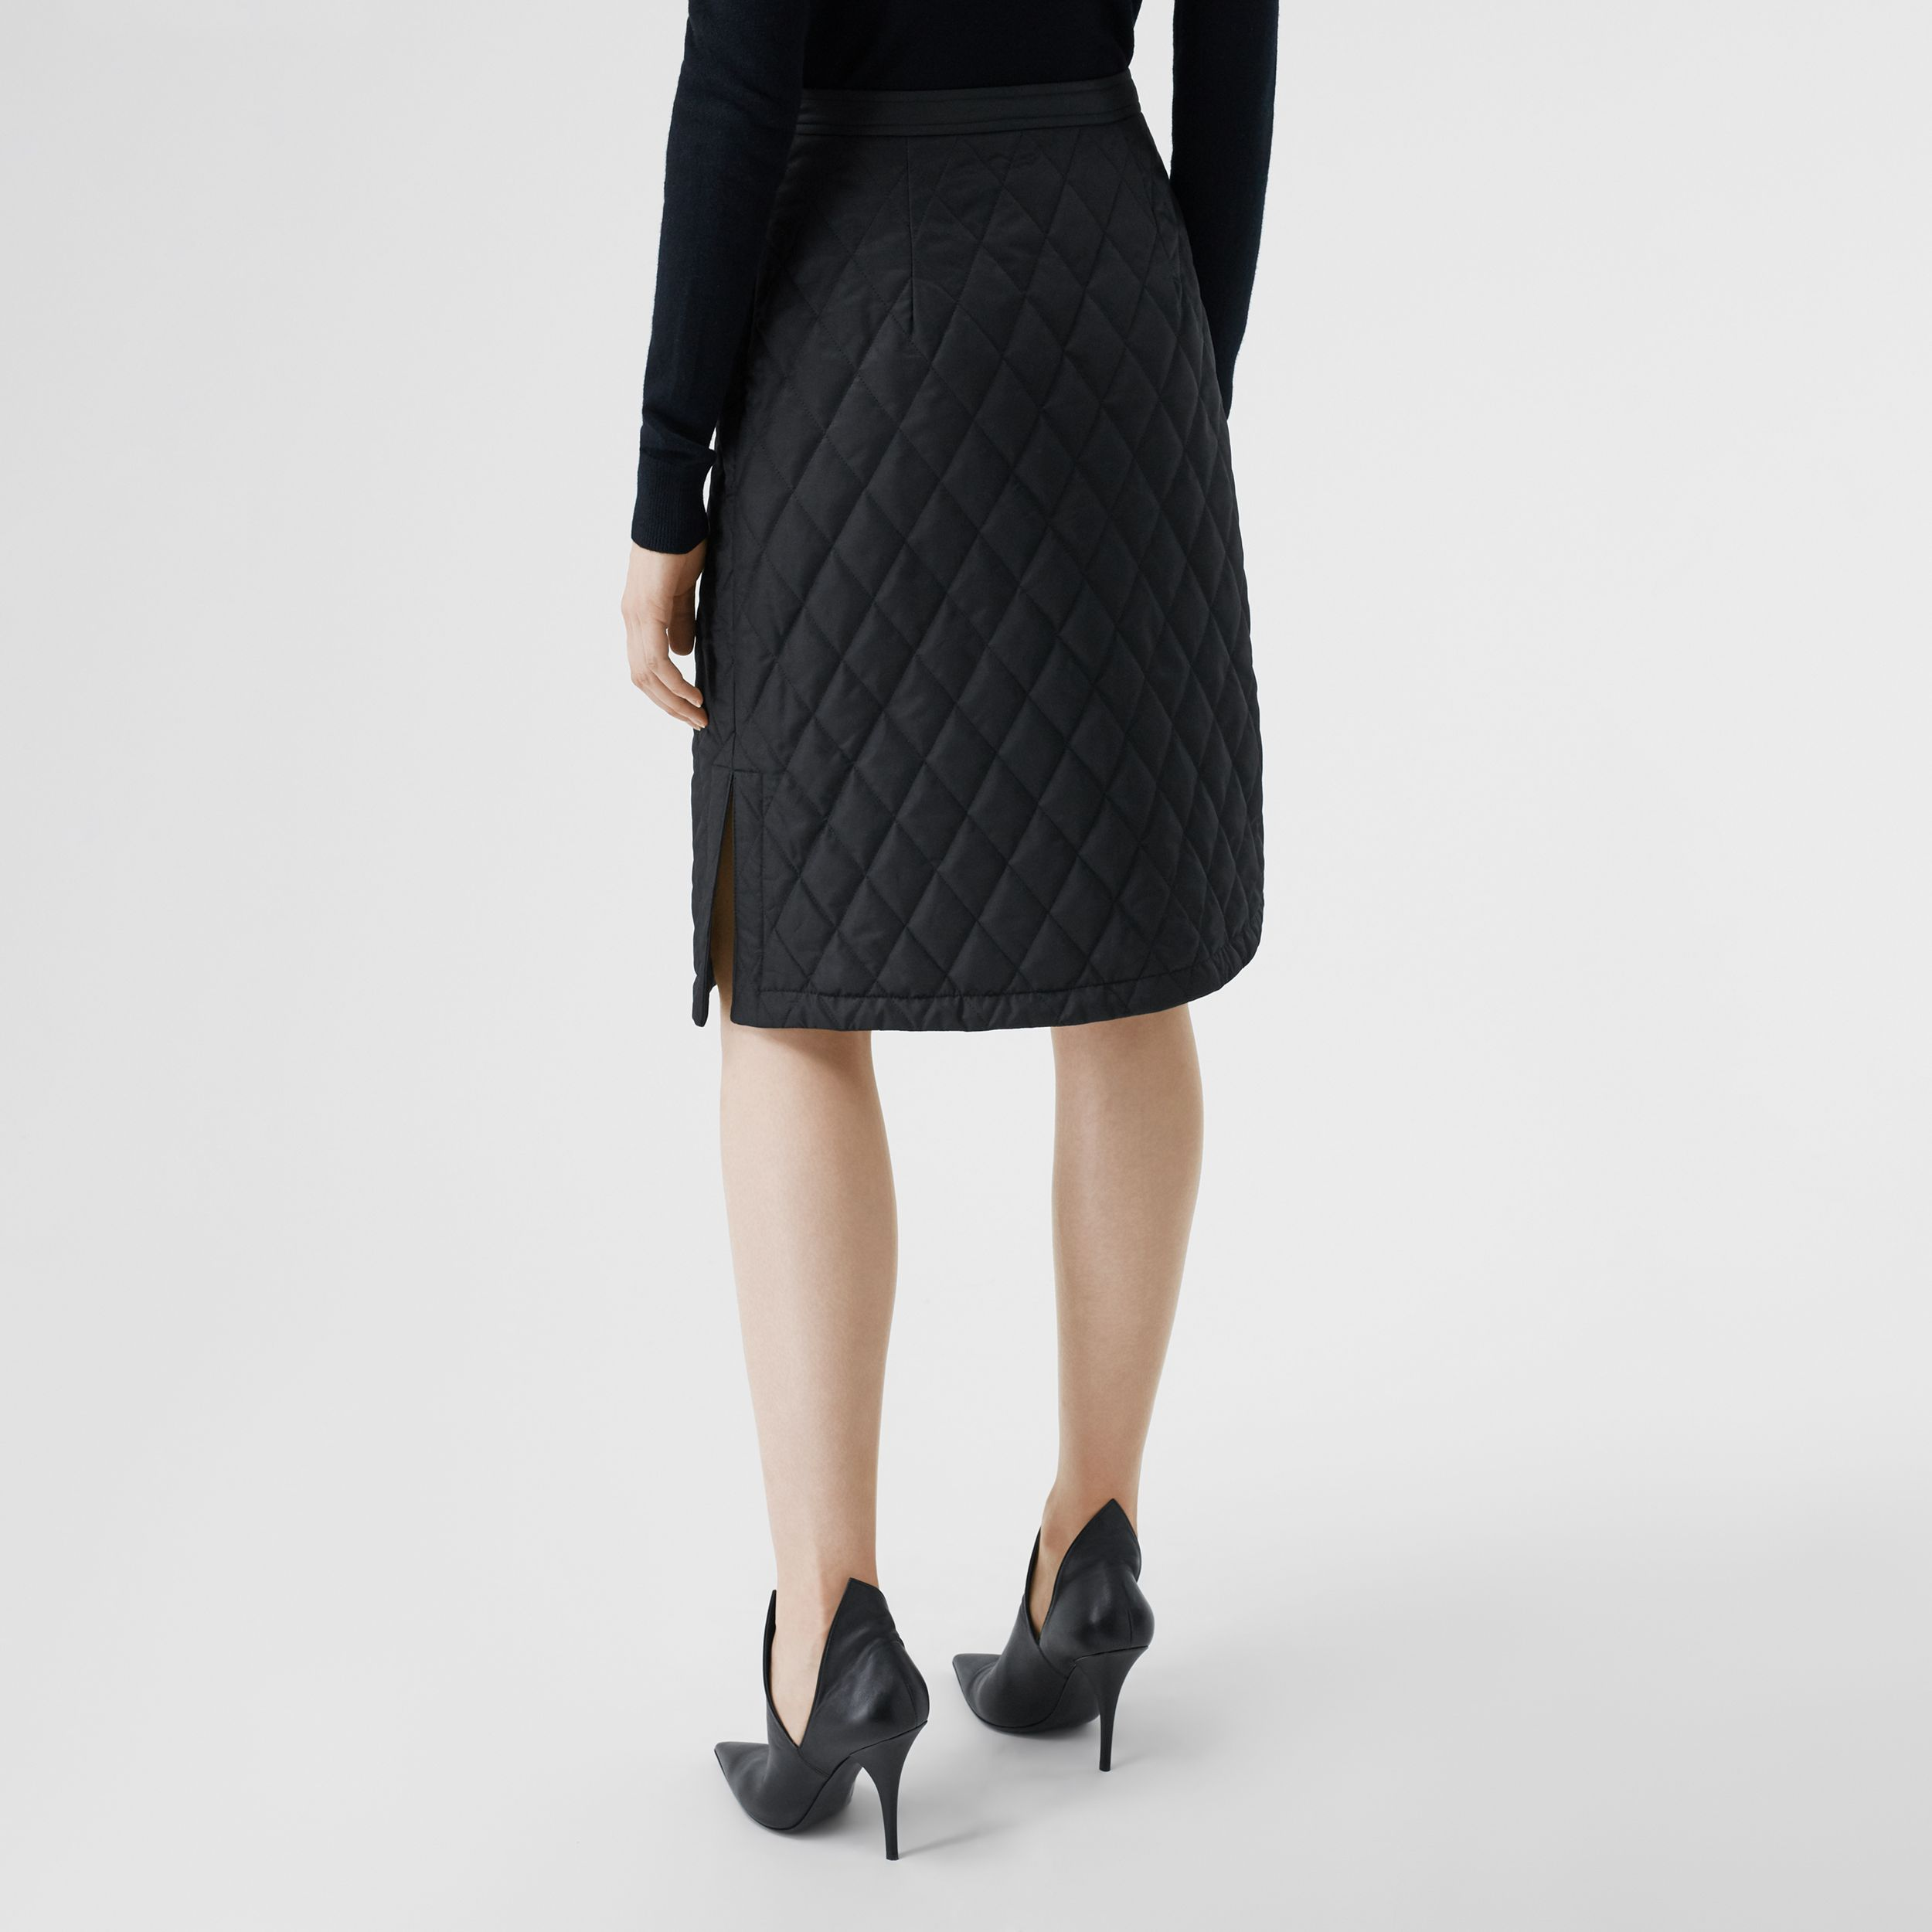 Diamond Quilted A-line Skirt in Black - Women | Burberry - 3